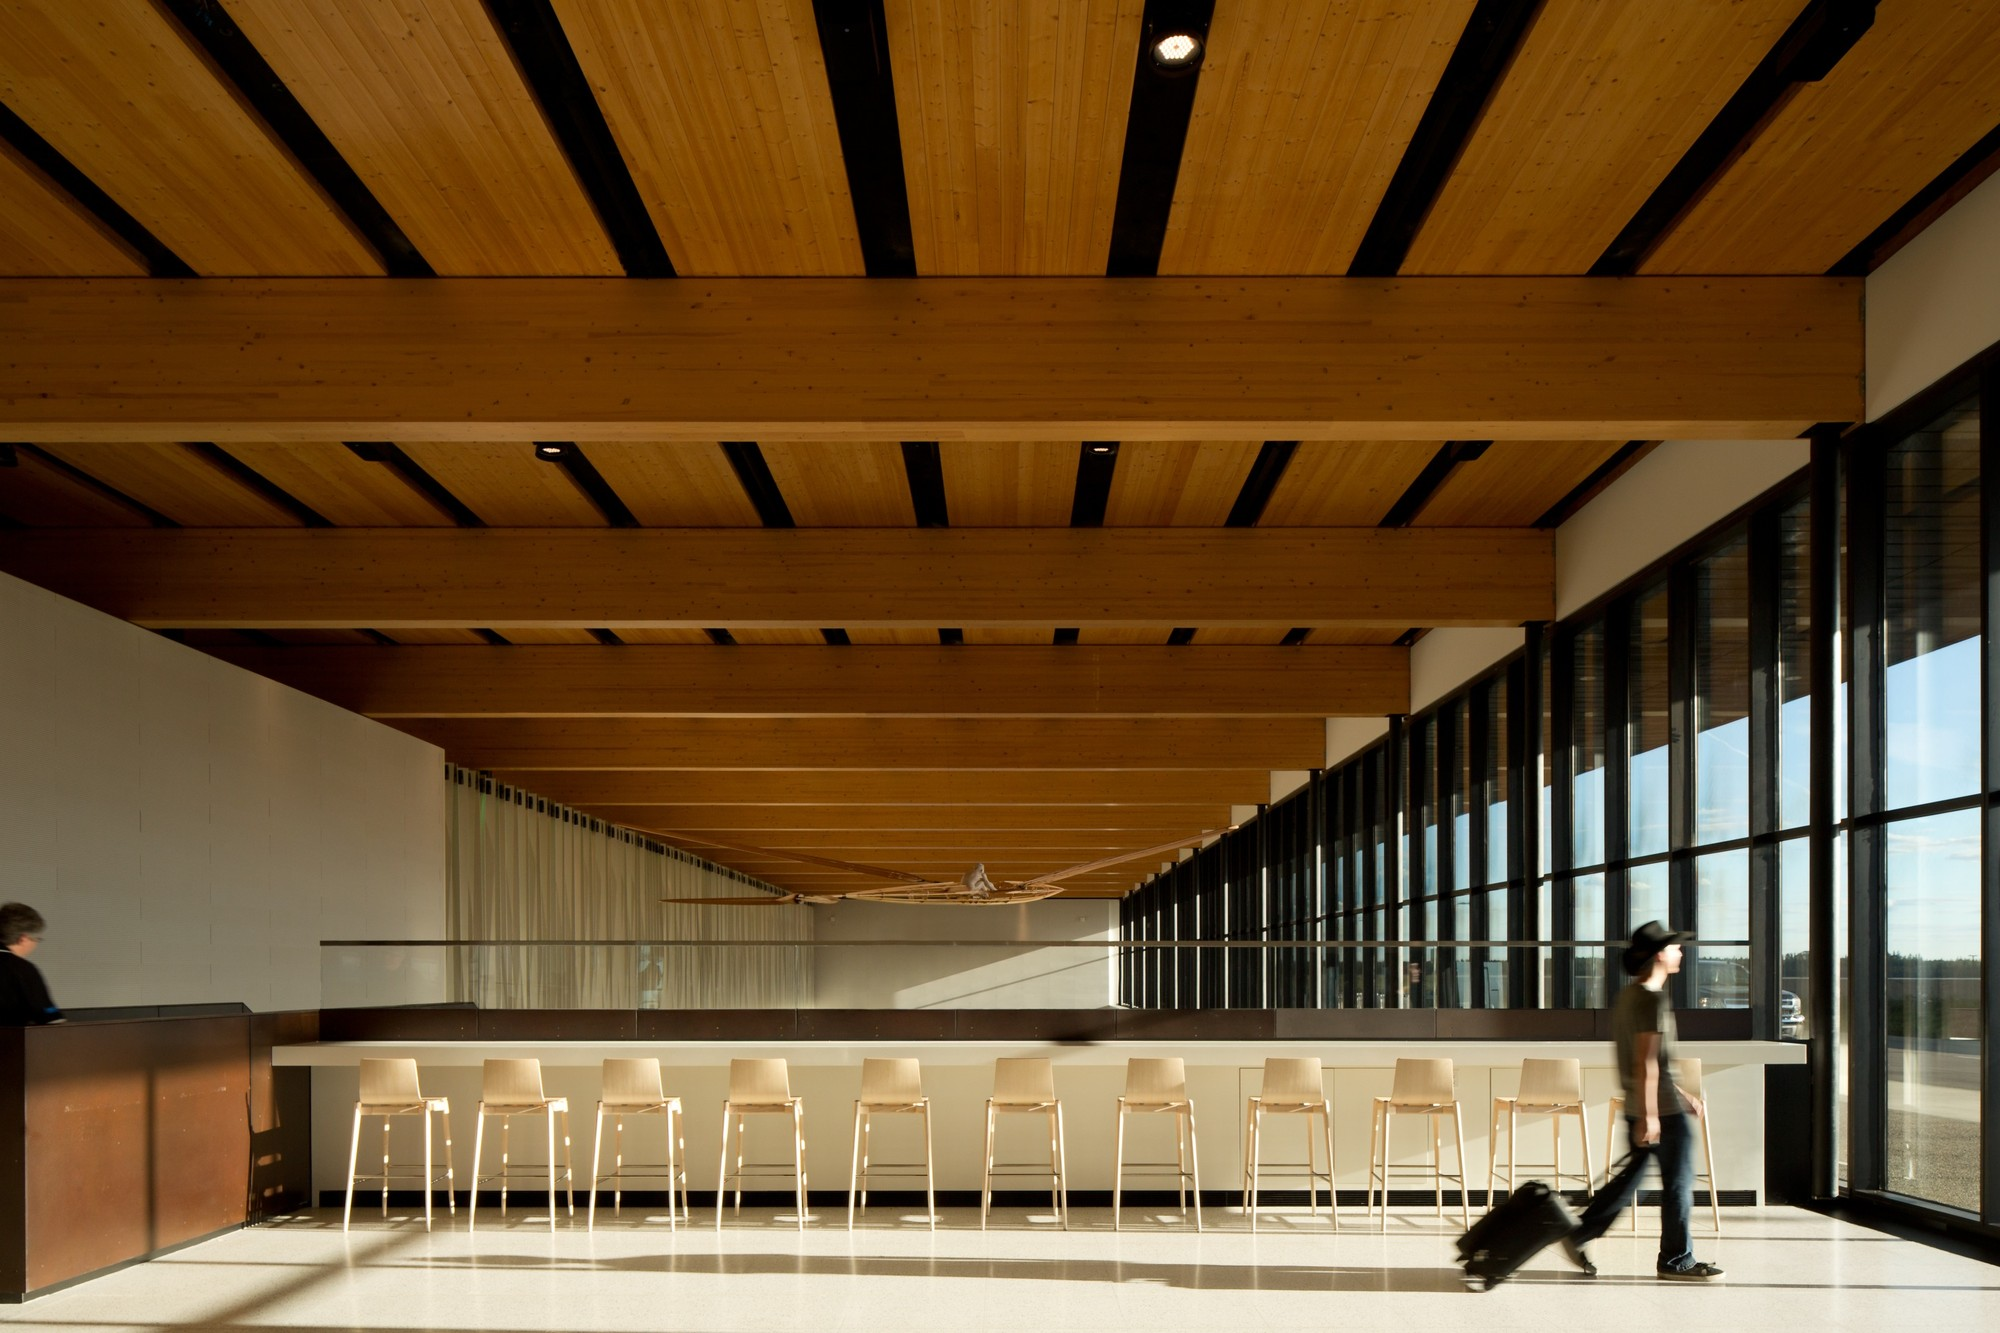 Aeropuerto internacional Fort McMurray / office of mcfarlane biggar architects + designers, © Ema Peter